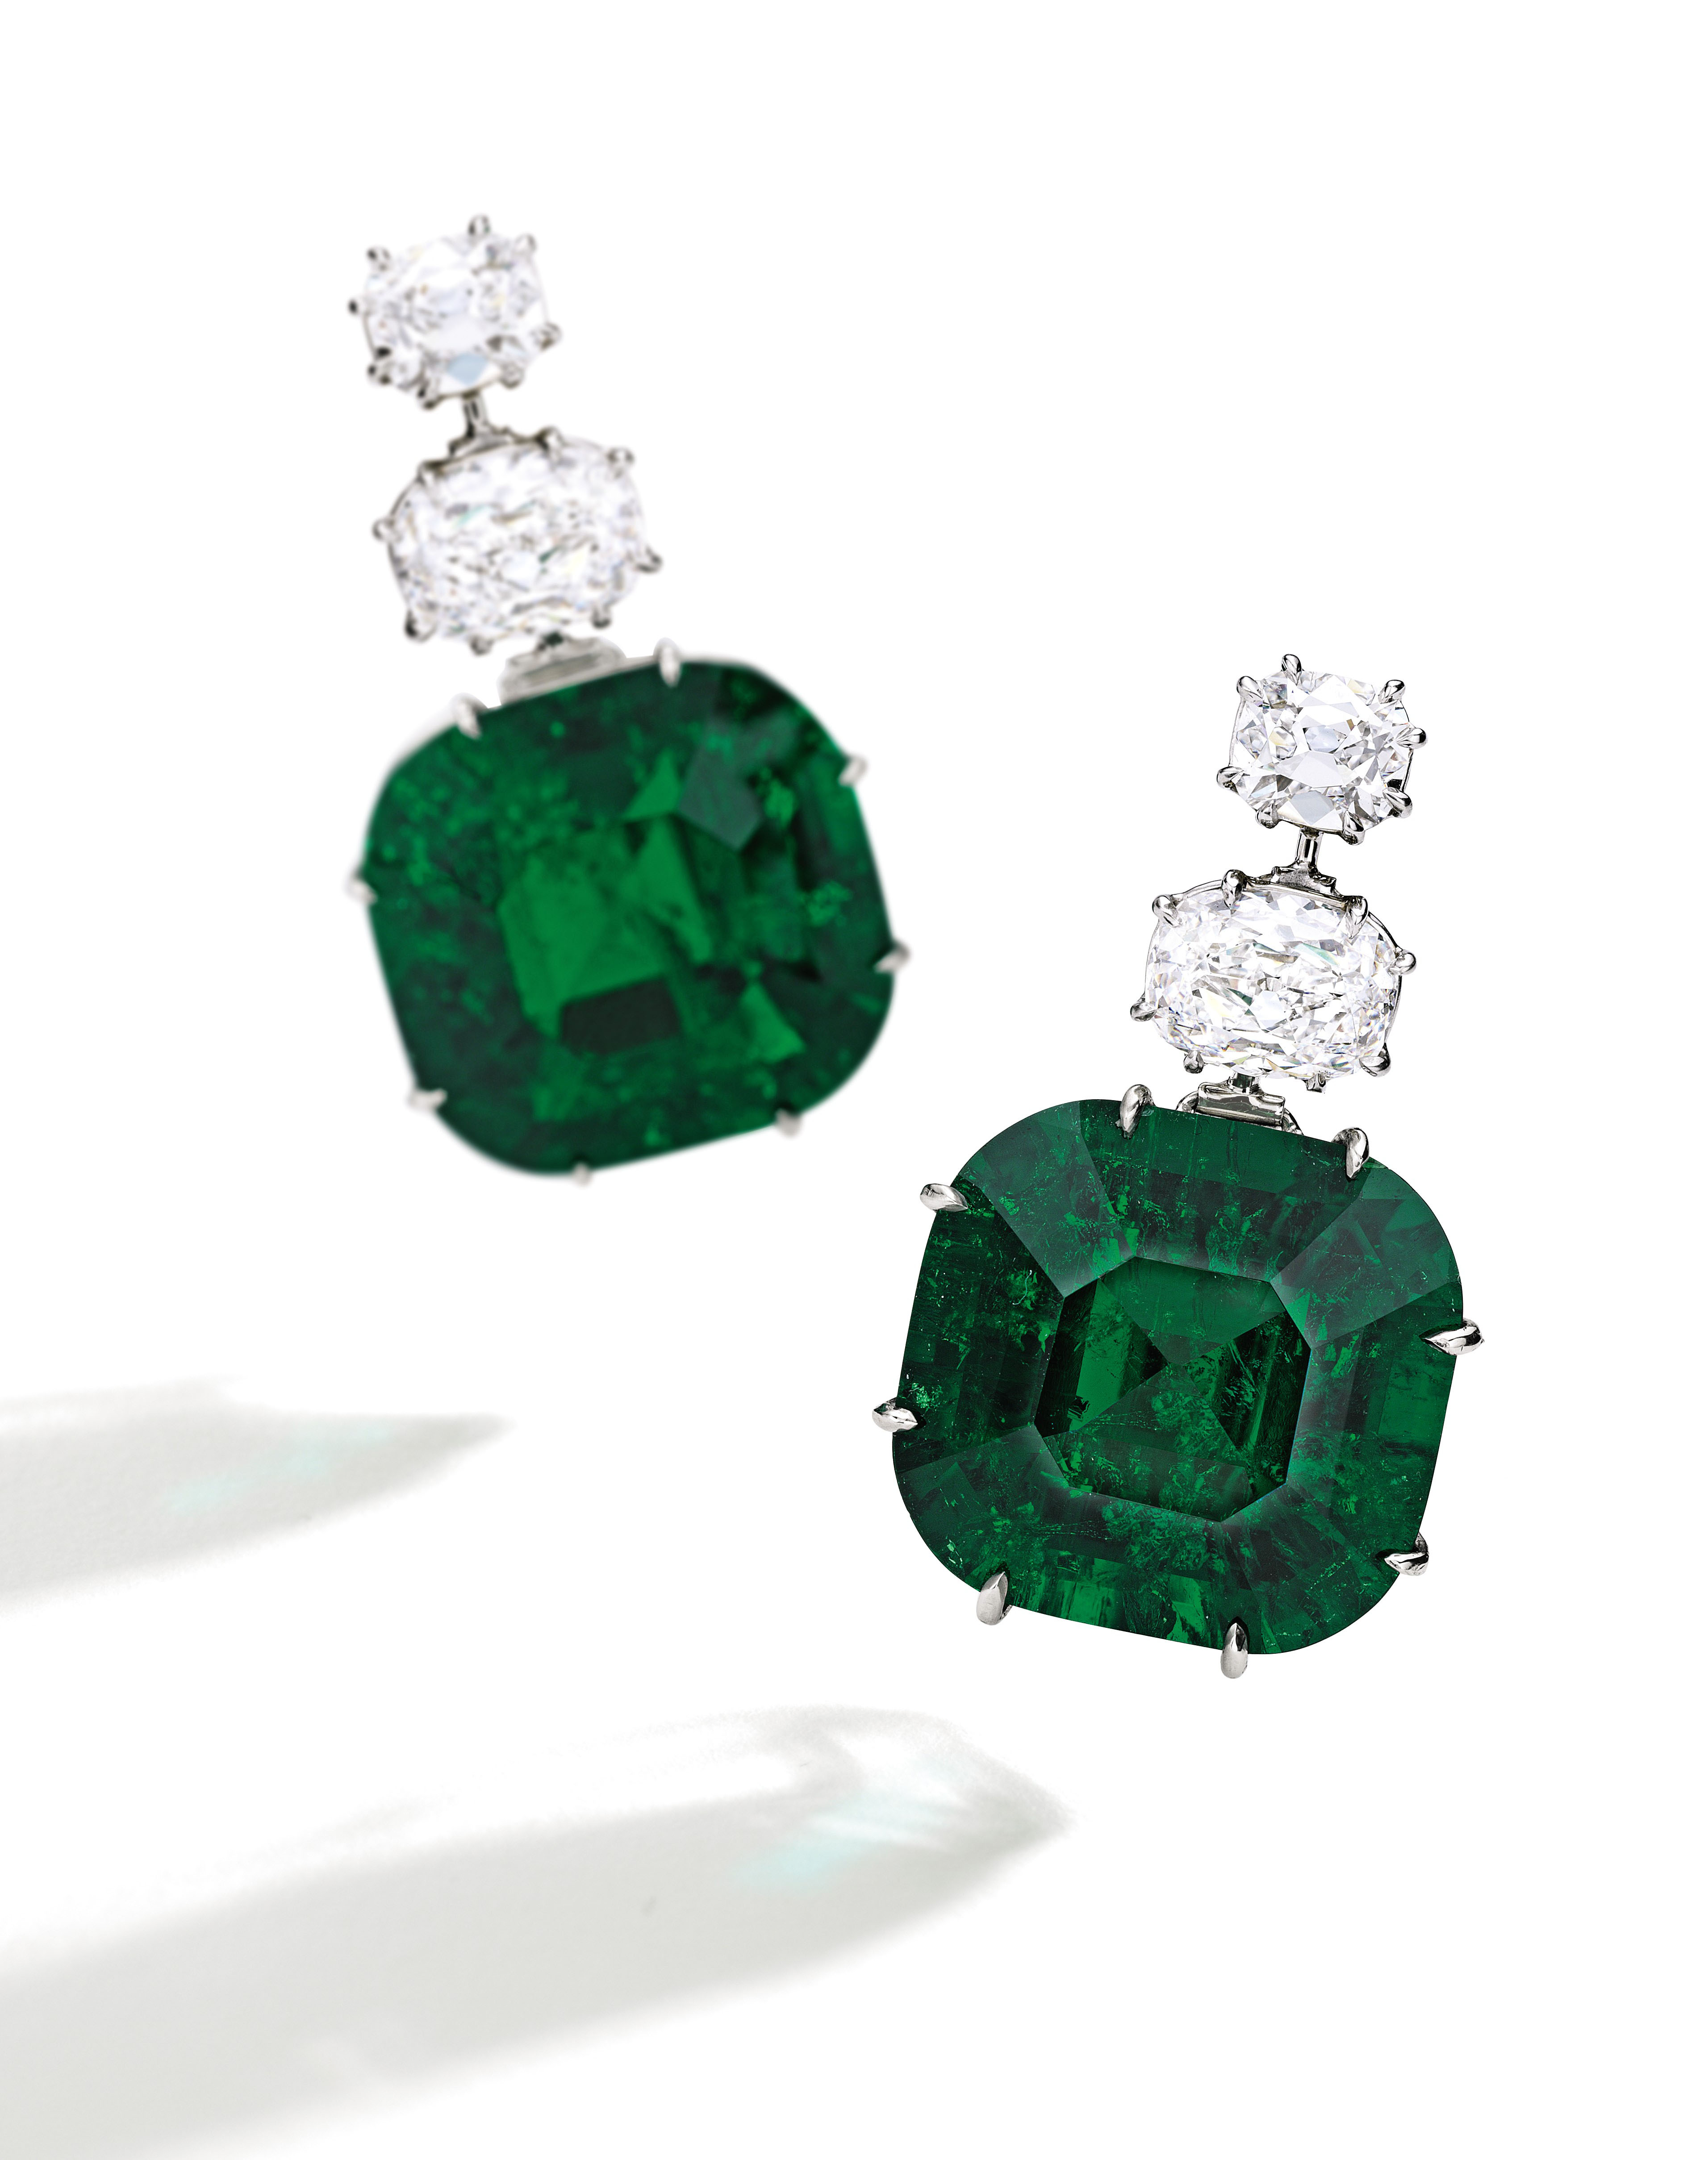 Highly Important Pair of Emerald and Diamond Earrings (estimate $1.8/2.2 million) are set with Classic Colombian emeralds. Known as The Stars of Muzo, the impressive emeralds weighing 22.97 and 21.37 carats are accompanied by two gemological reports stating the stones are unenhanced. These exceptionally rare emeralds are accented by more than 5 carats of D color, Internally Flawless diamonds.